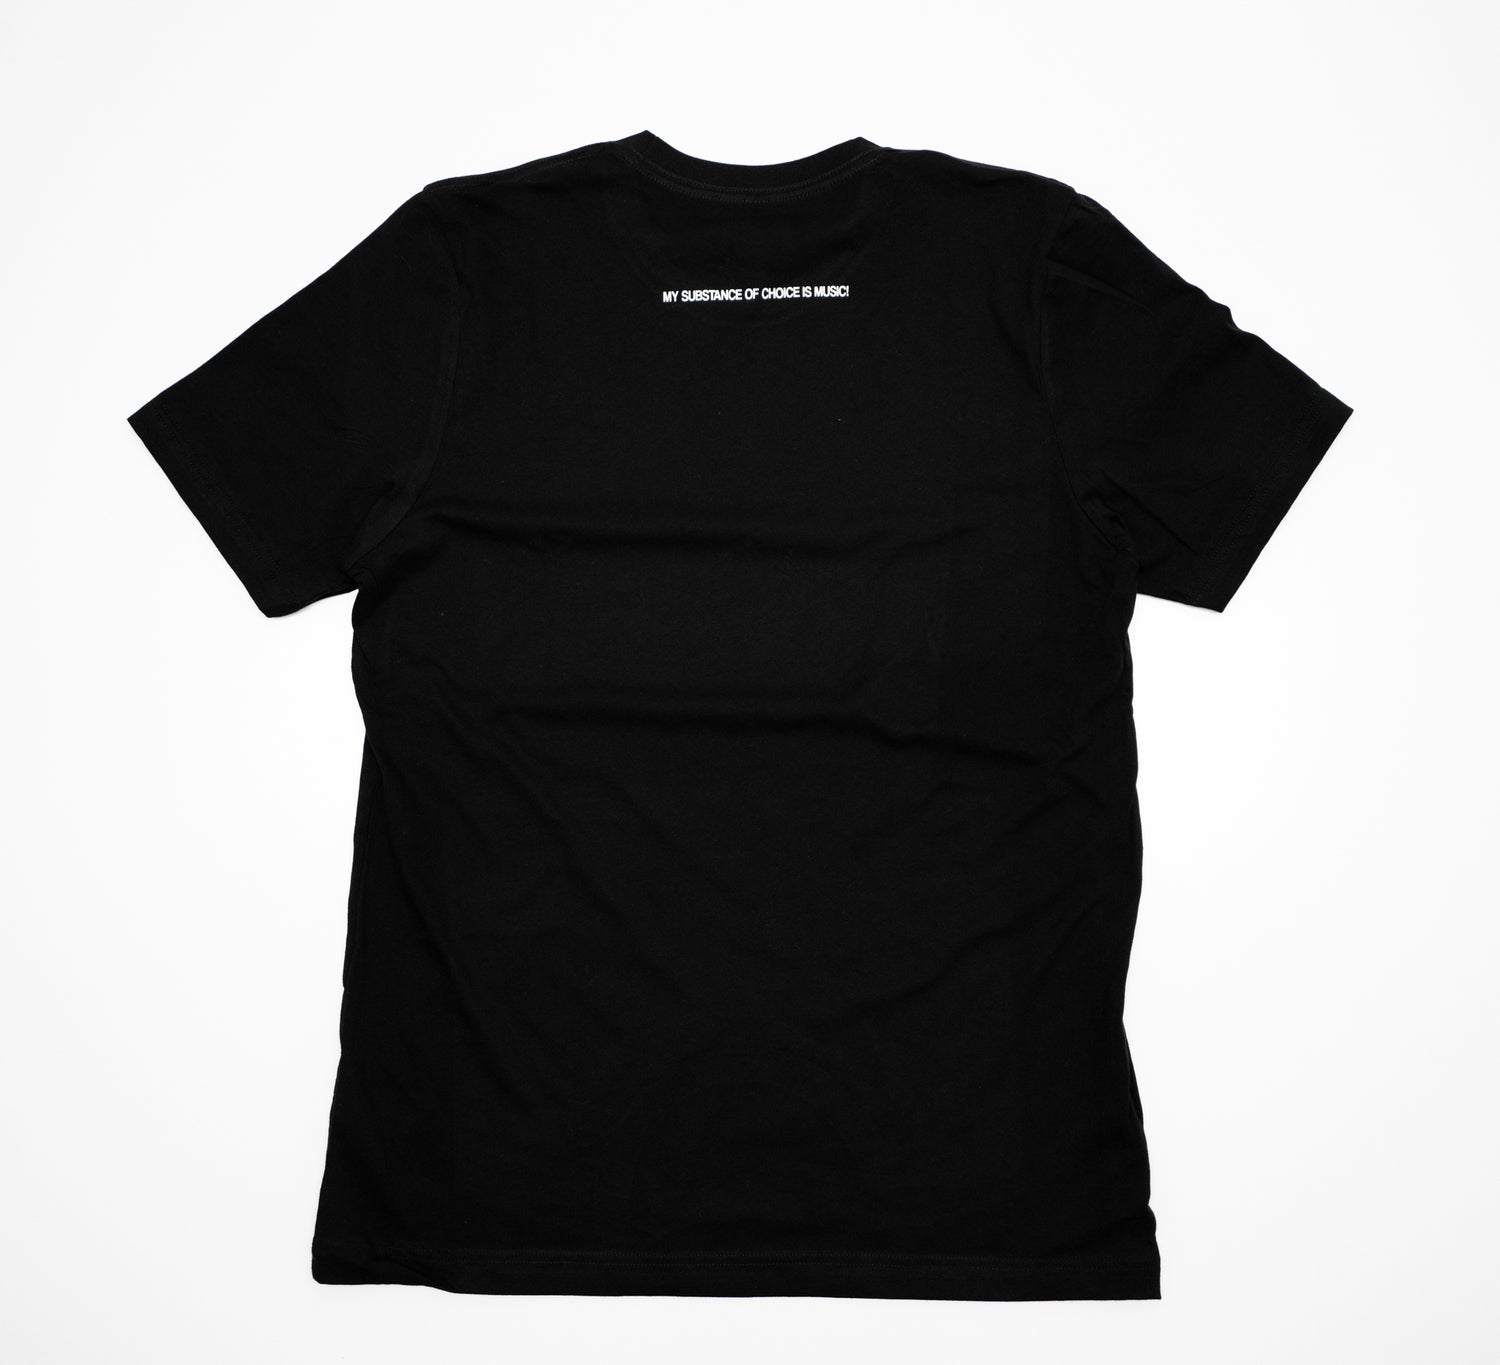 Image of MMMH SUMMER SHIRT  (black soft tee)